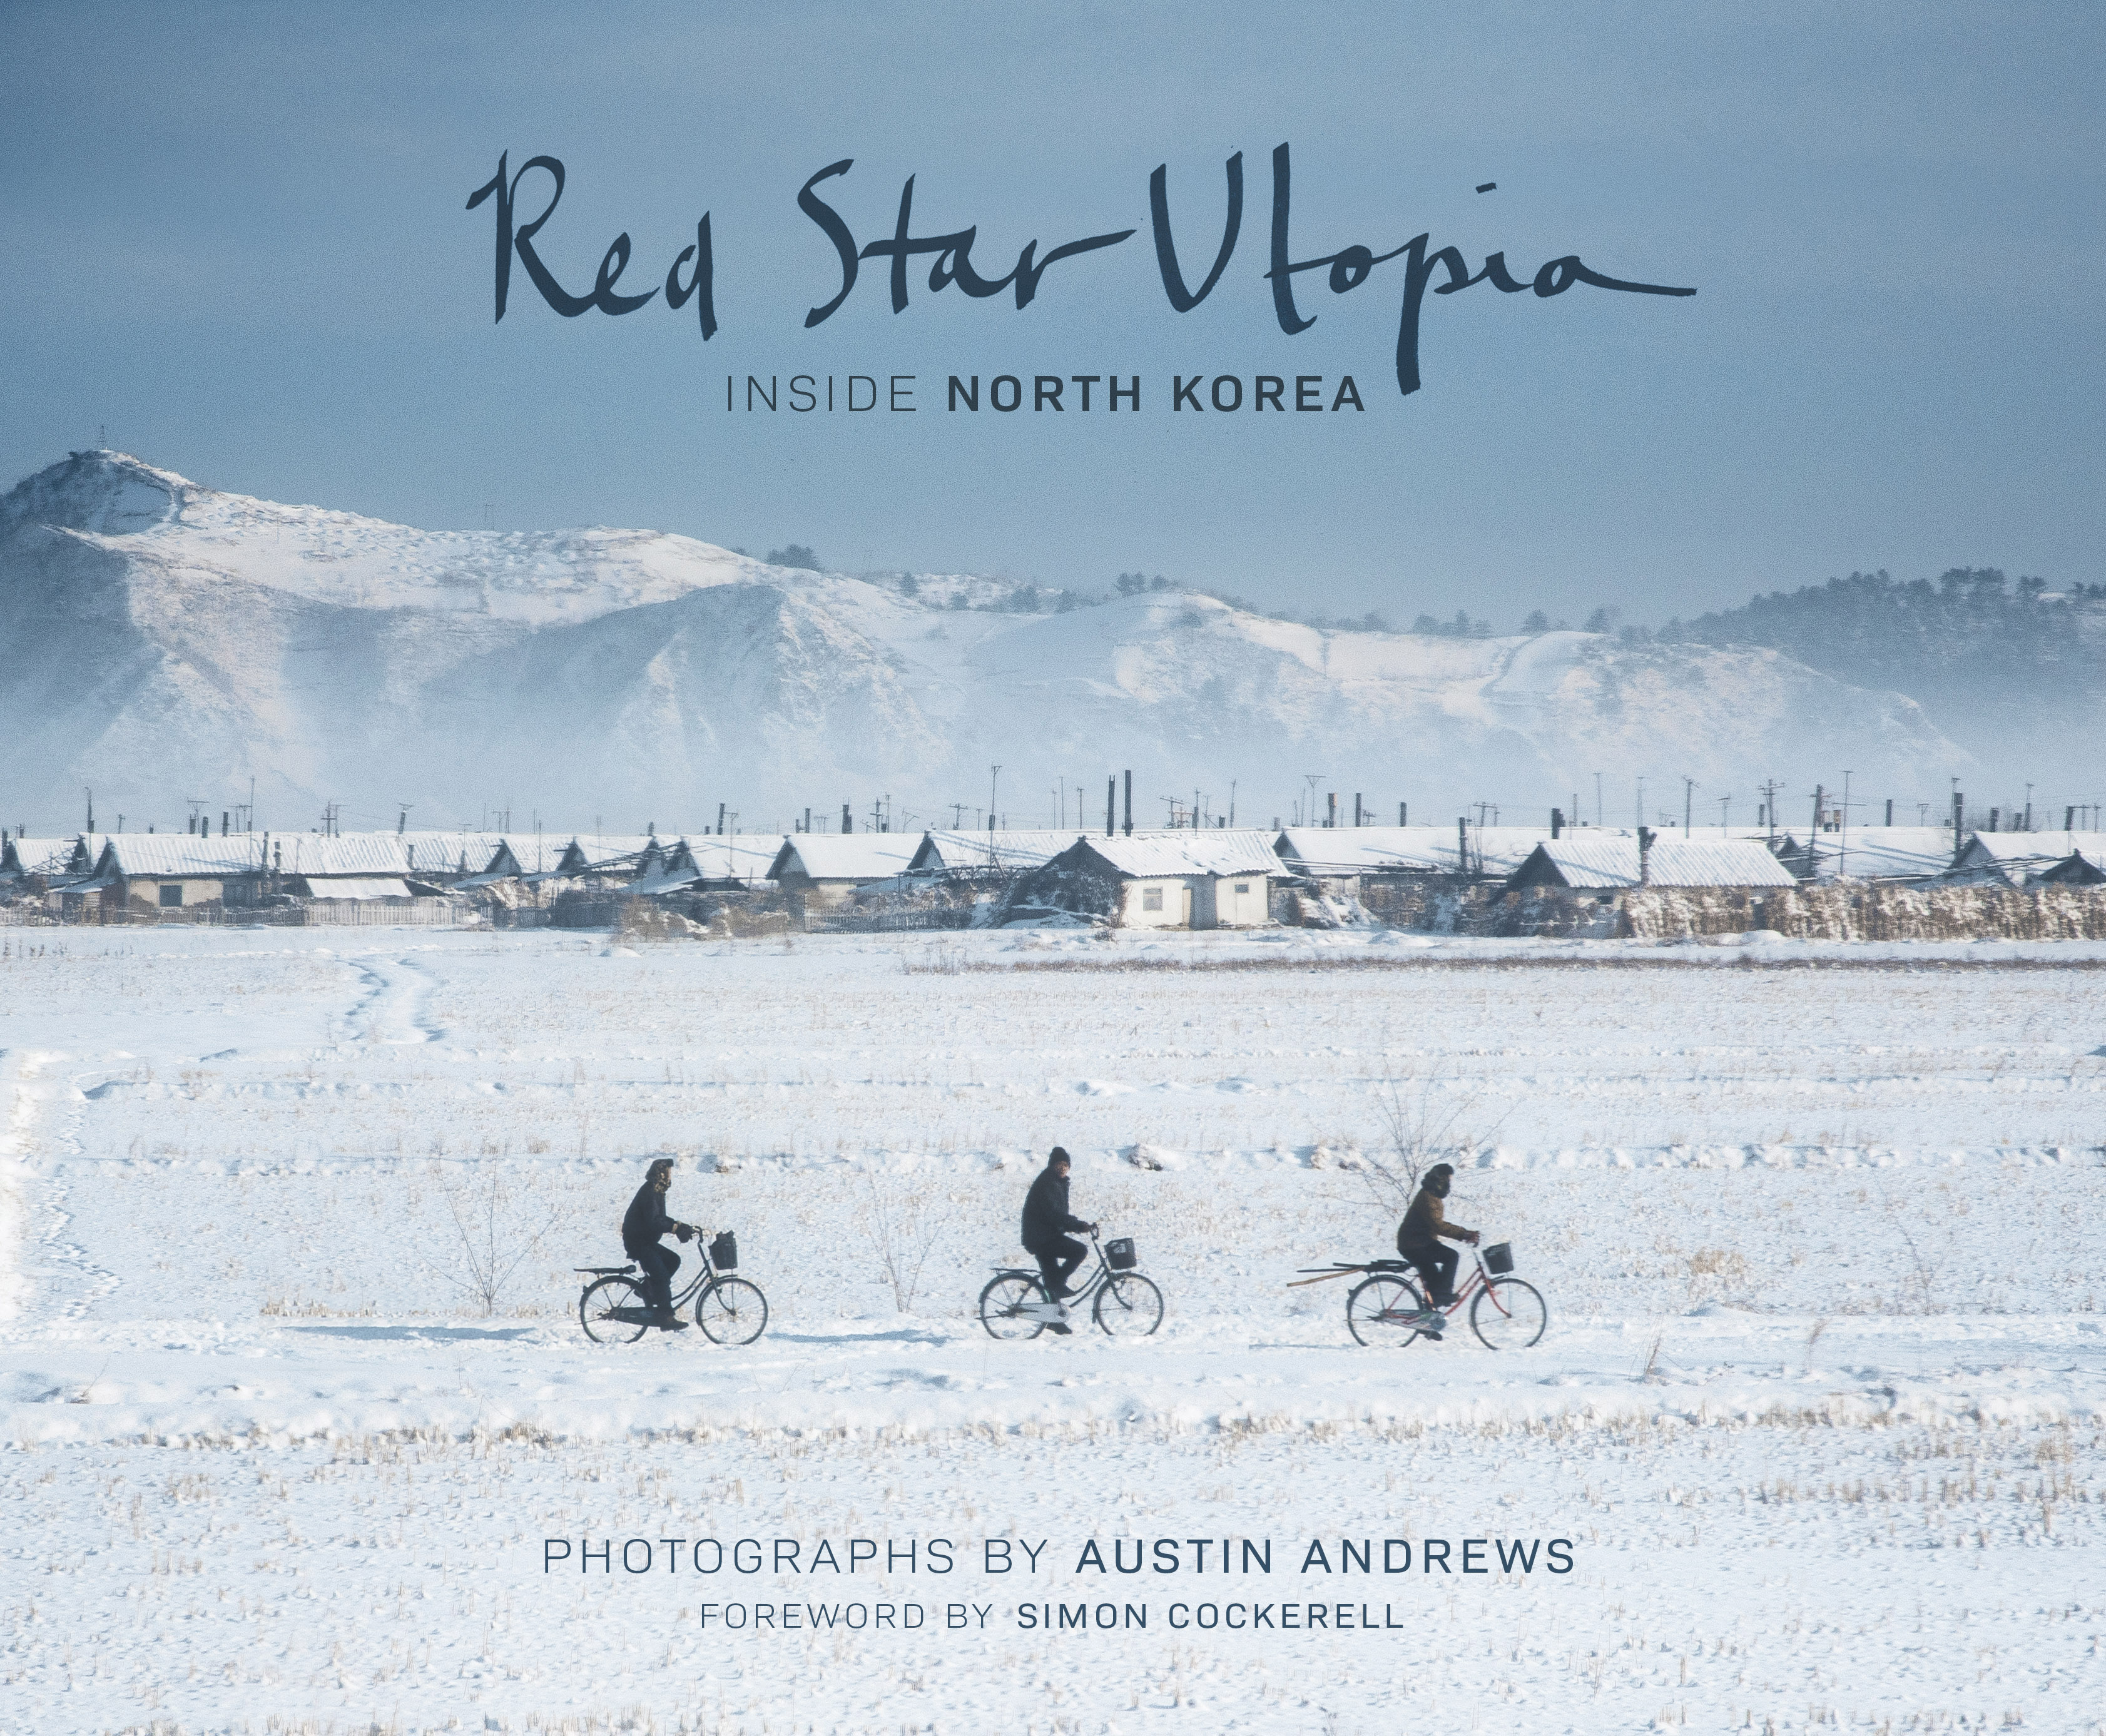 Red Star Utopia: Inside North Korea